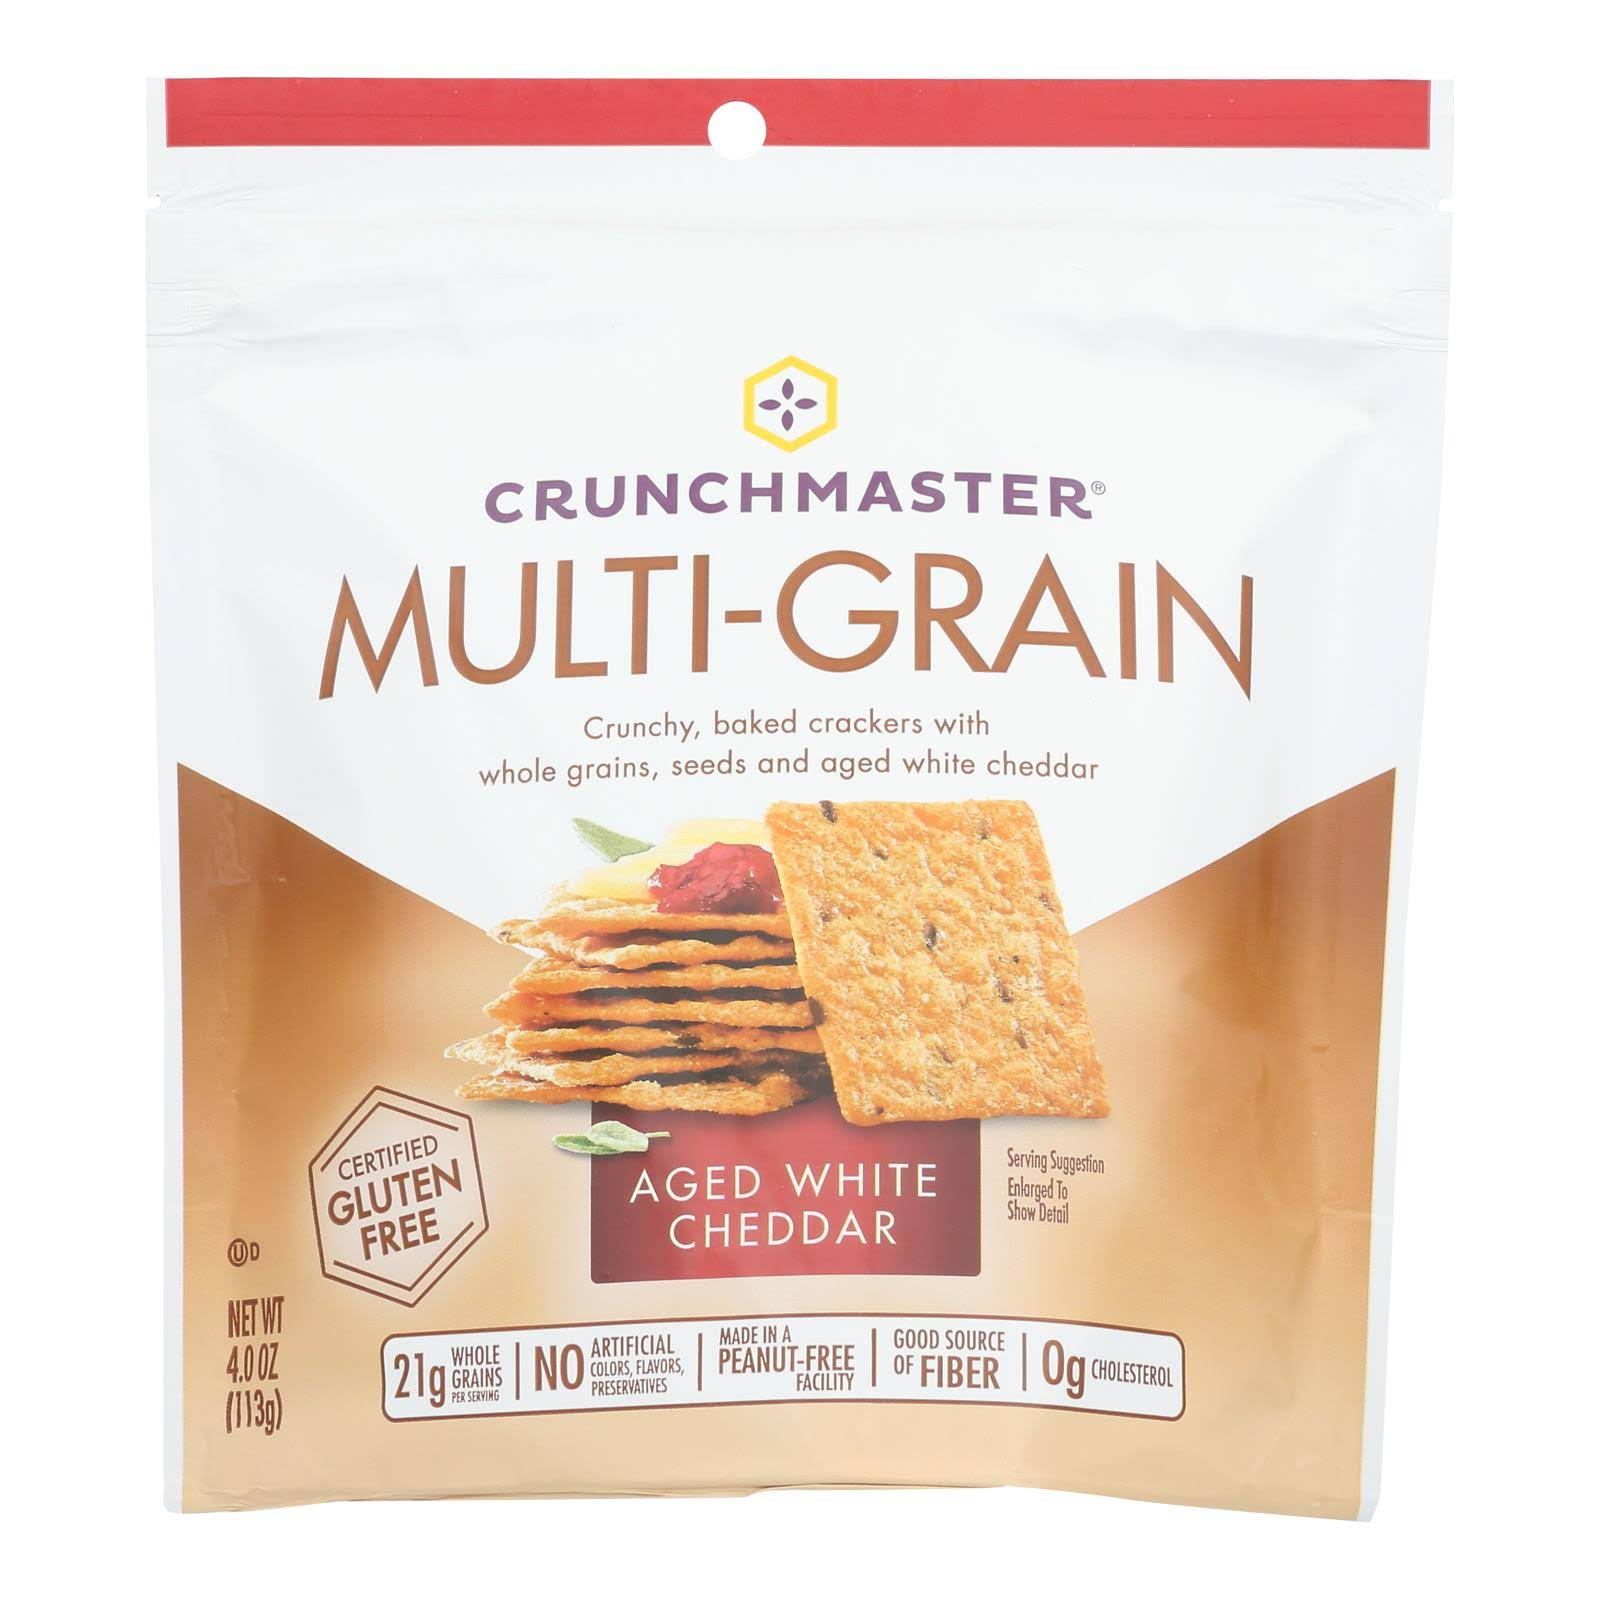 Crunchmaster Crackers, Multi-Grain, Aged White Cheddar - 4.0 oz